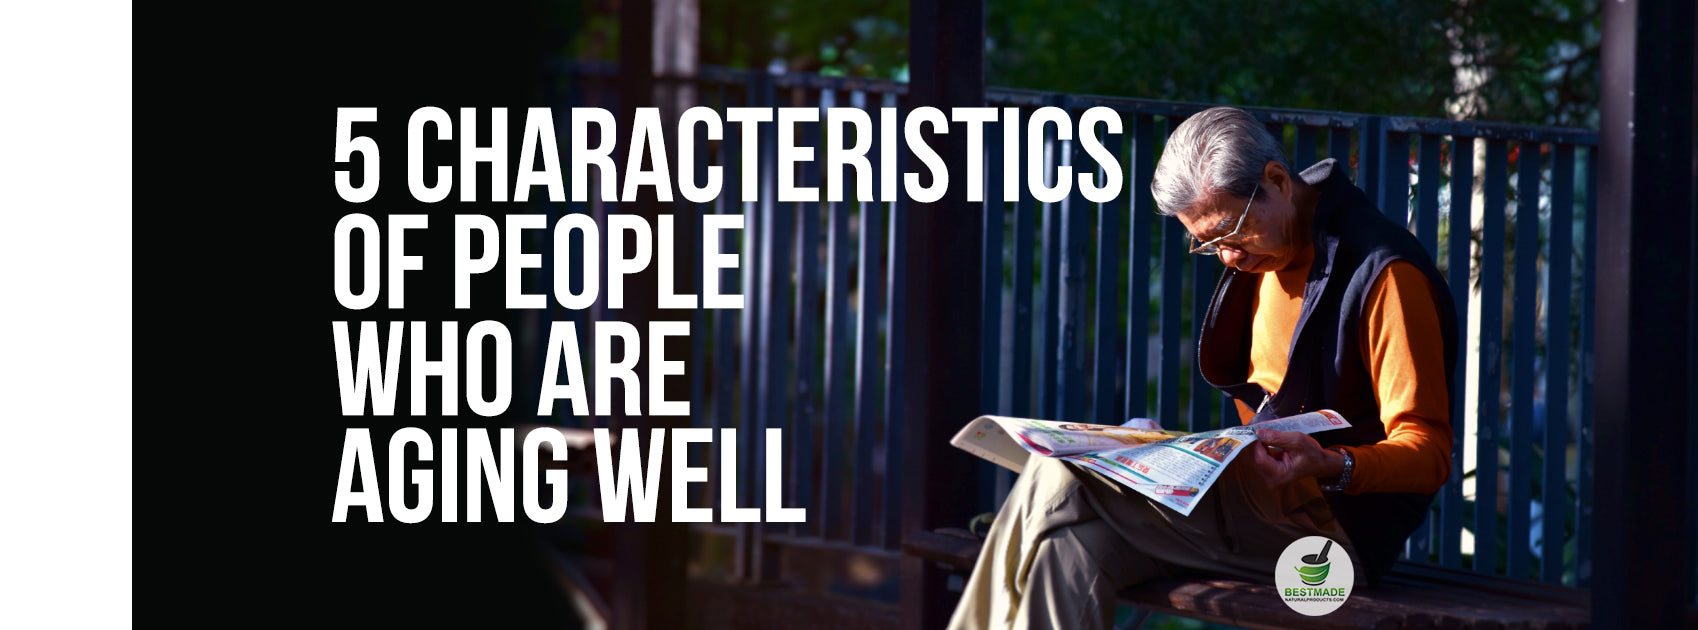 5 Characteristics Of People Who Are Aging Well